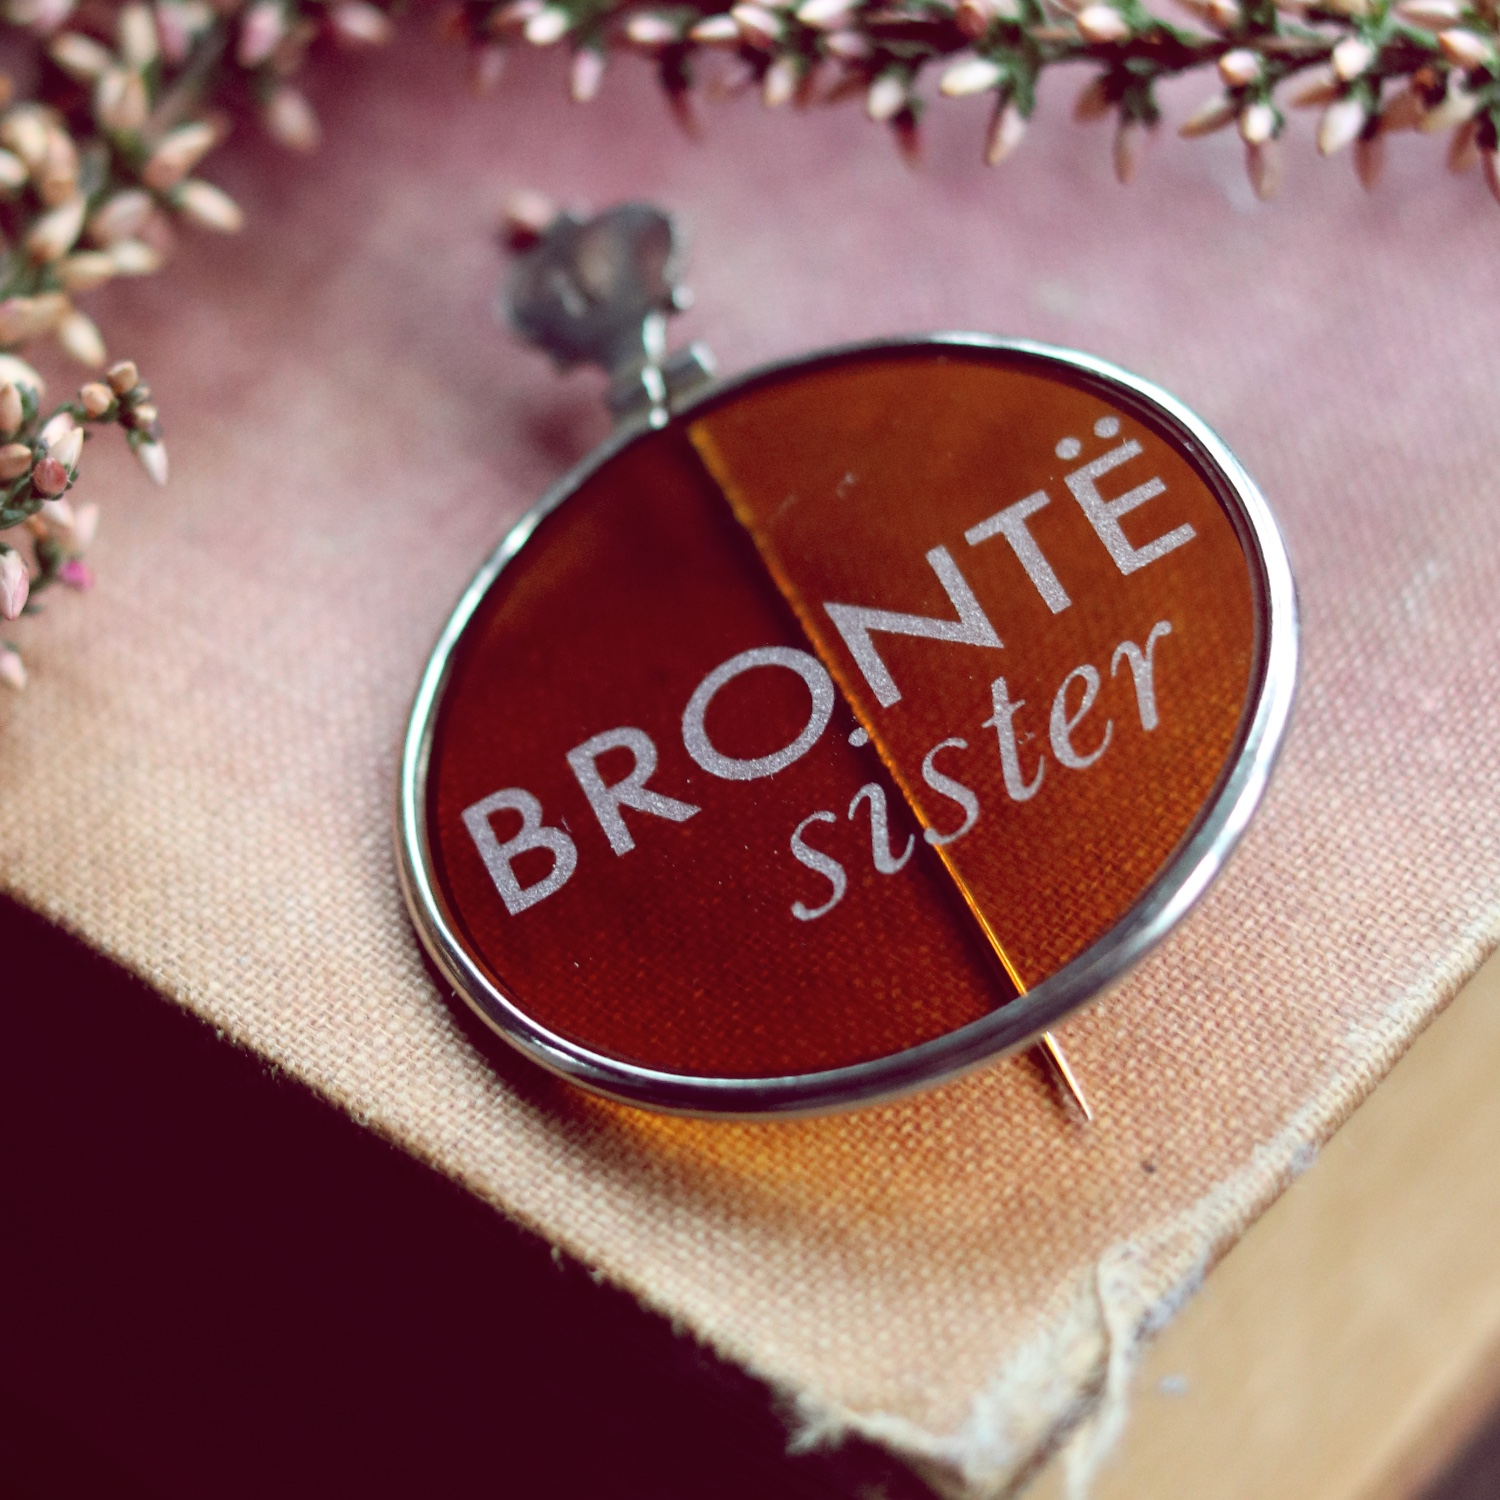 bronte-sister-etched-lapel-pin-vinegar-and-brown-paper.jpg